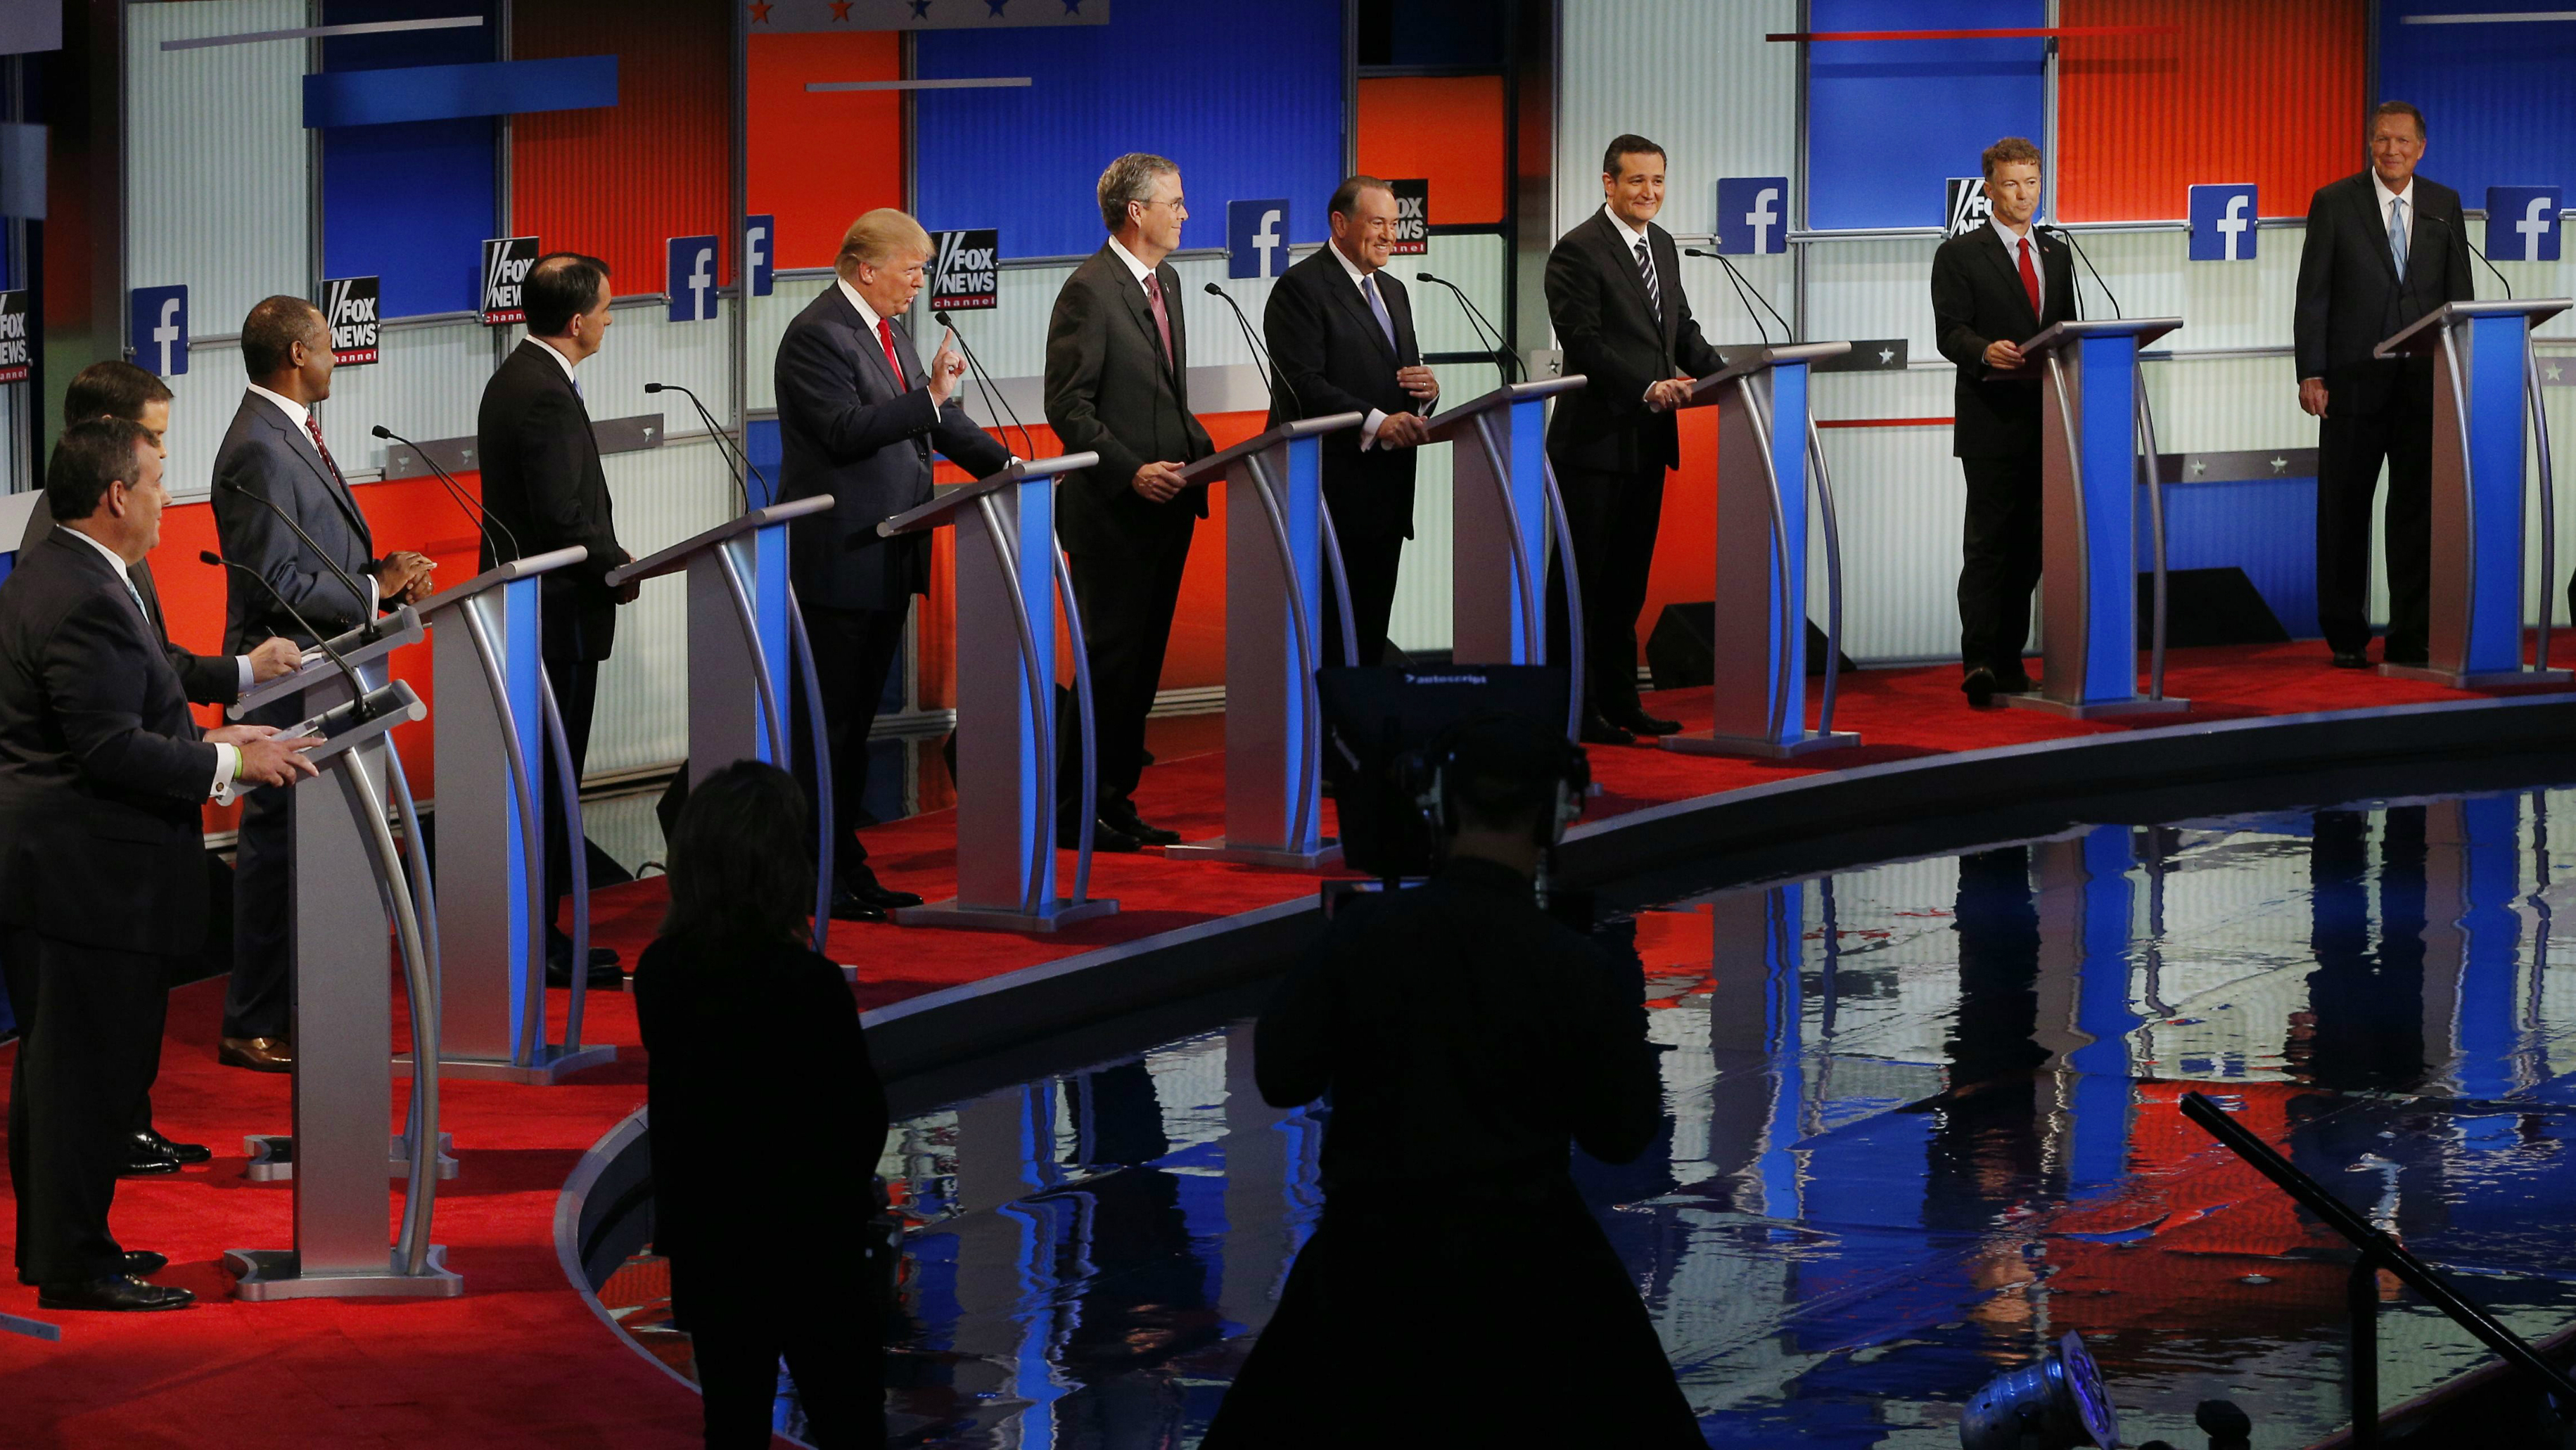 The first official Republican presidential candidates debate of the 2016 U.S. presidential campaign in Cleveland, Ohio, August 6, 2015.